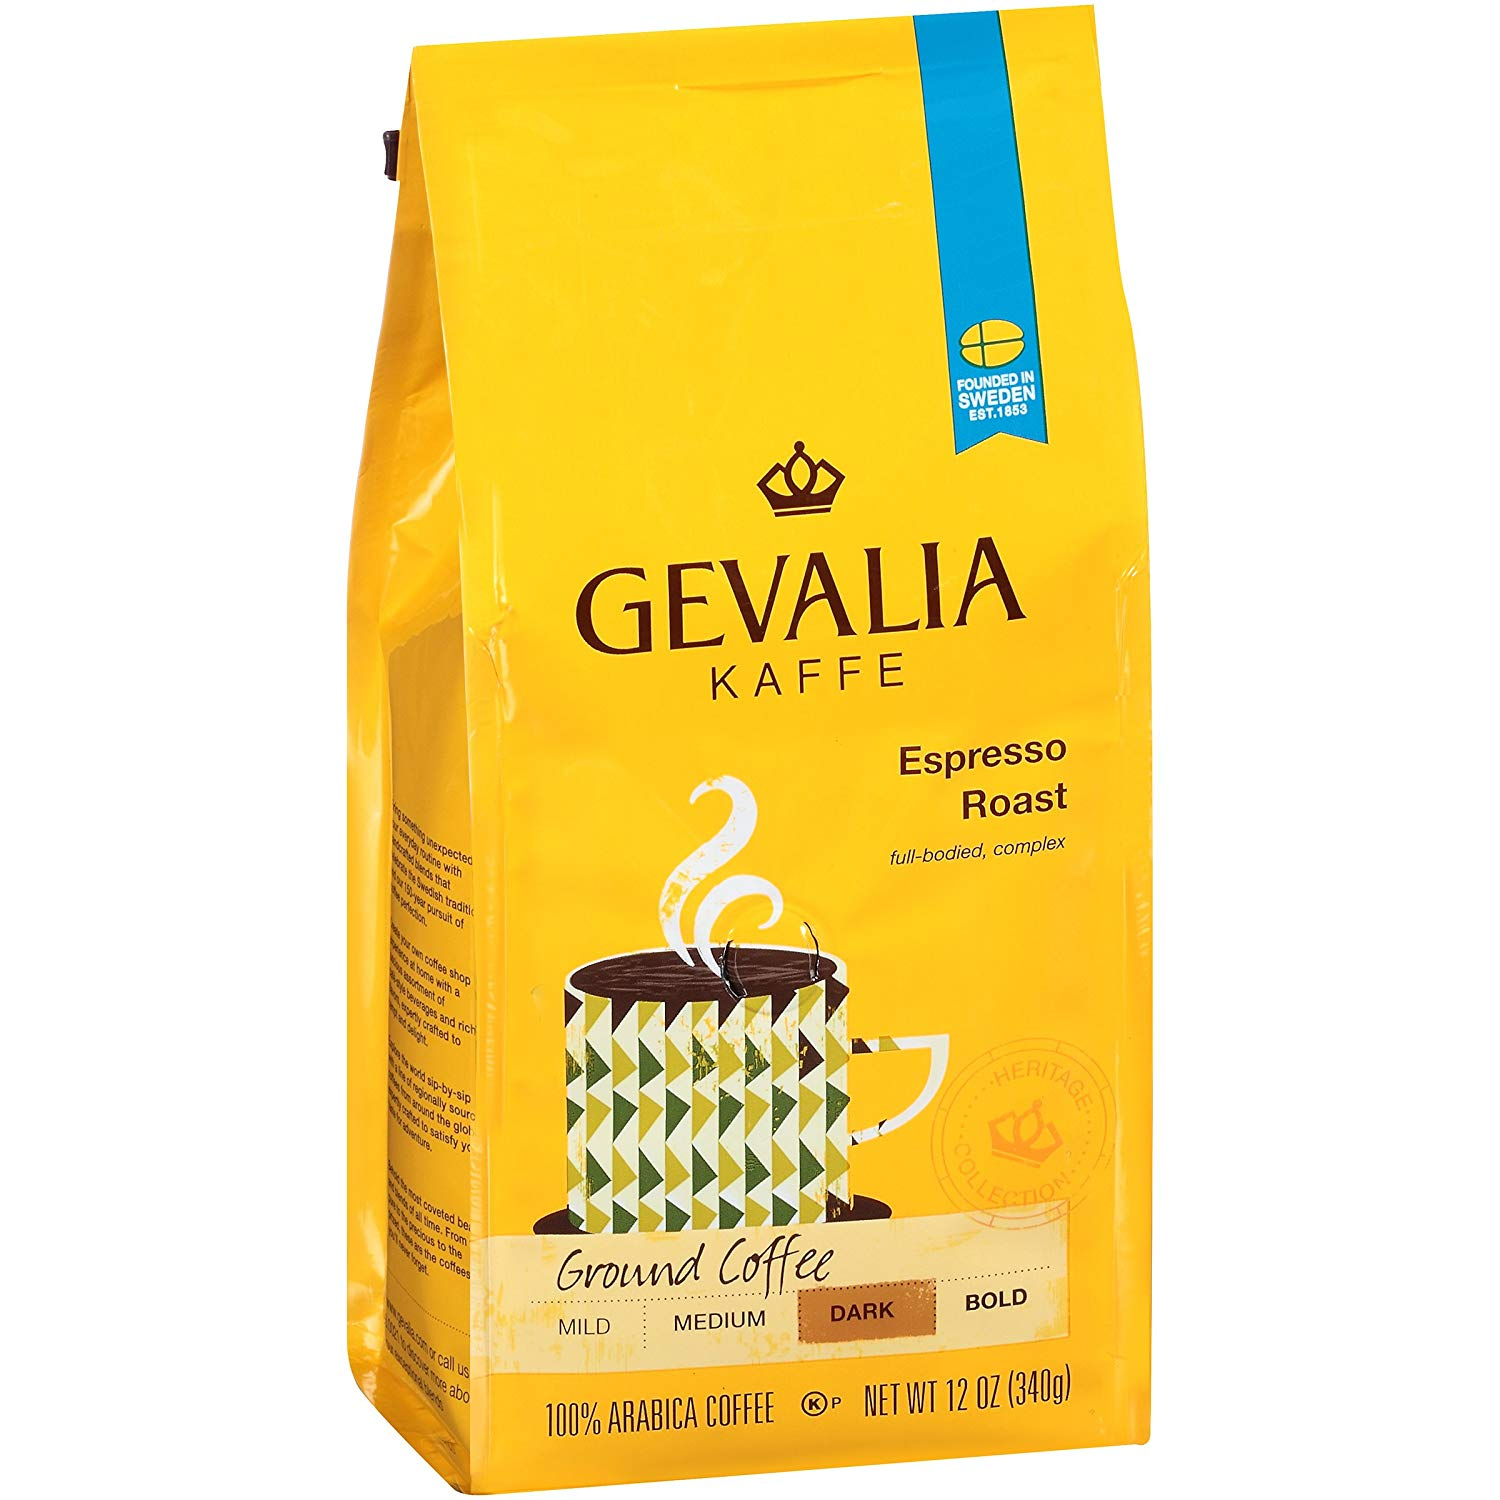 6-Pack 12oz. Gevalia Blend Ground Coffee (various flavors) from $23.74 w/ S&S + Free Shipping via Amazon